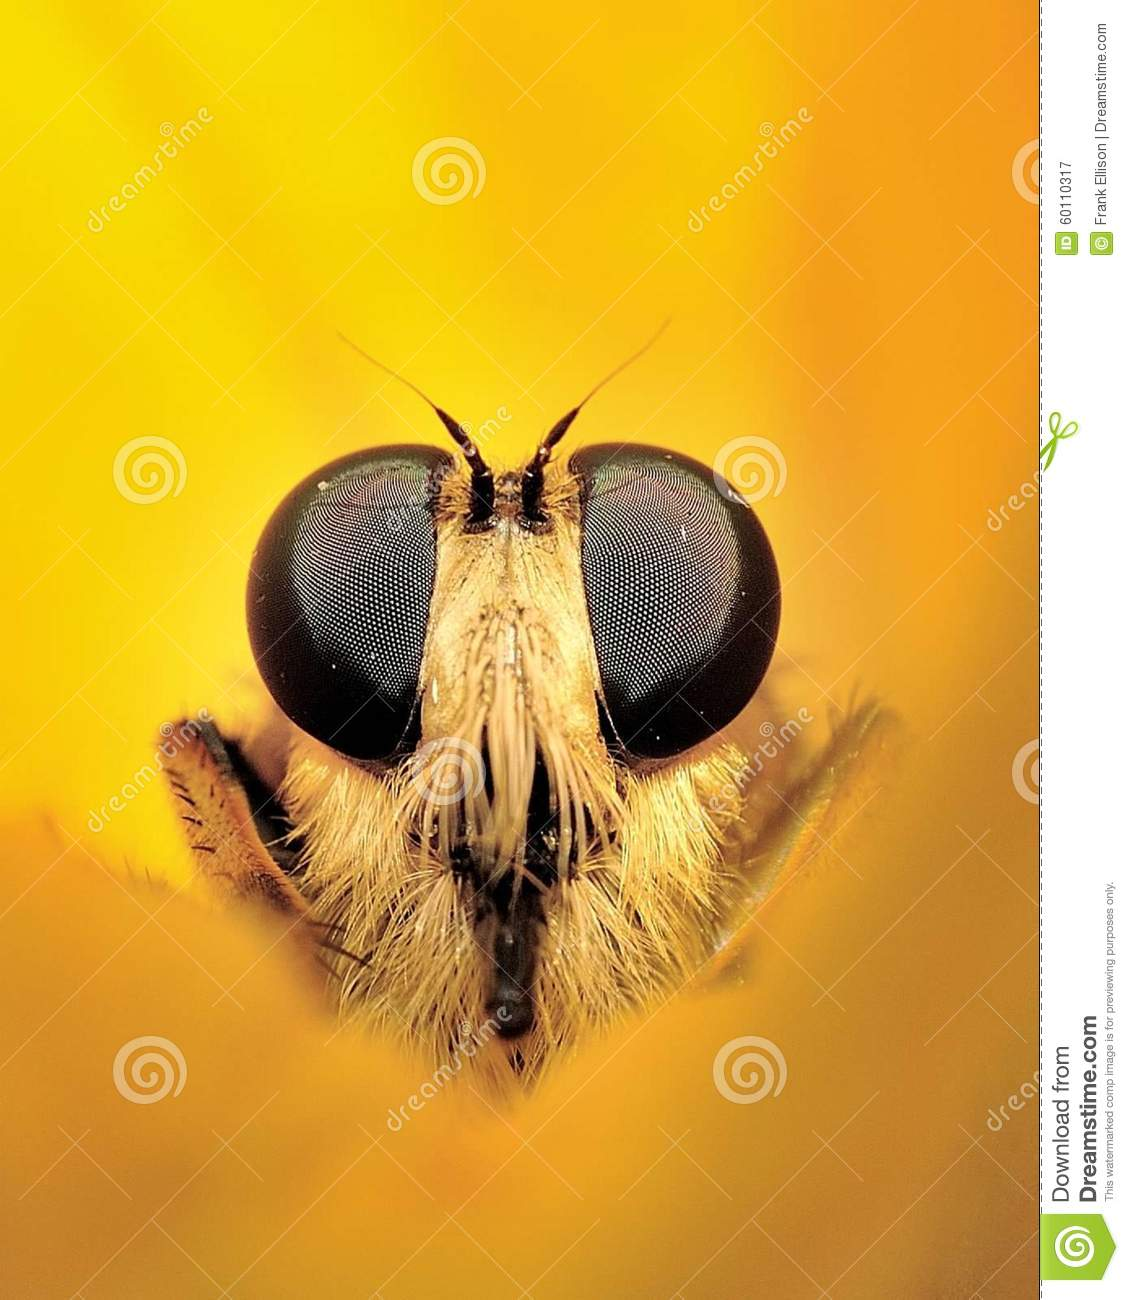 Toriko Surrounded By Bugs Jpg: Nature Surrounded Stock Image. Image Of Assassin, Hair